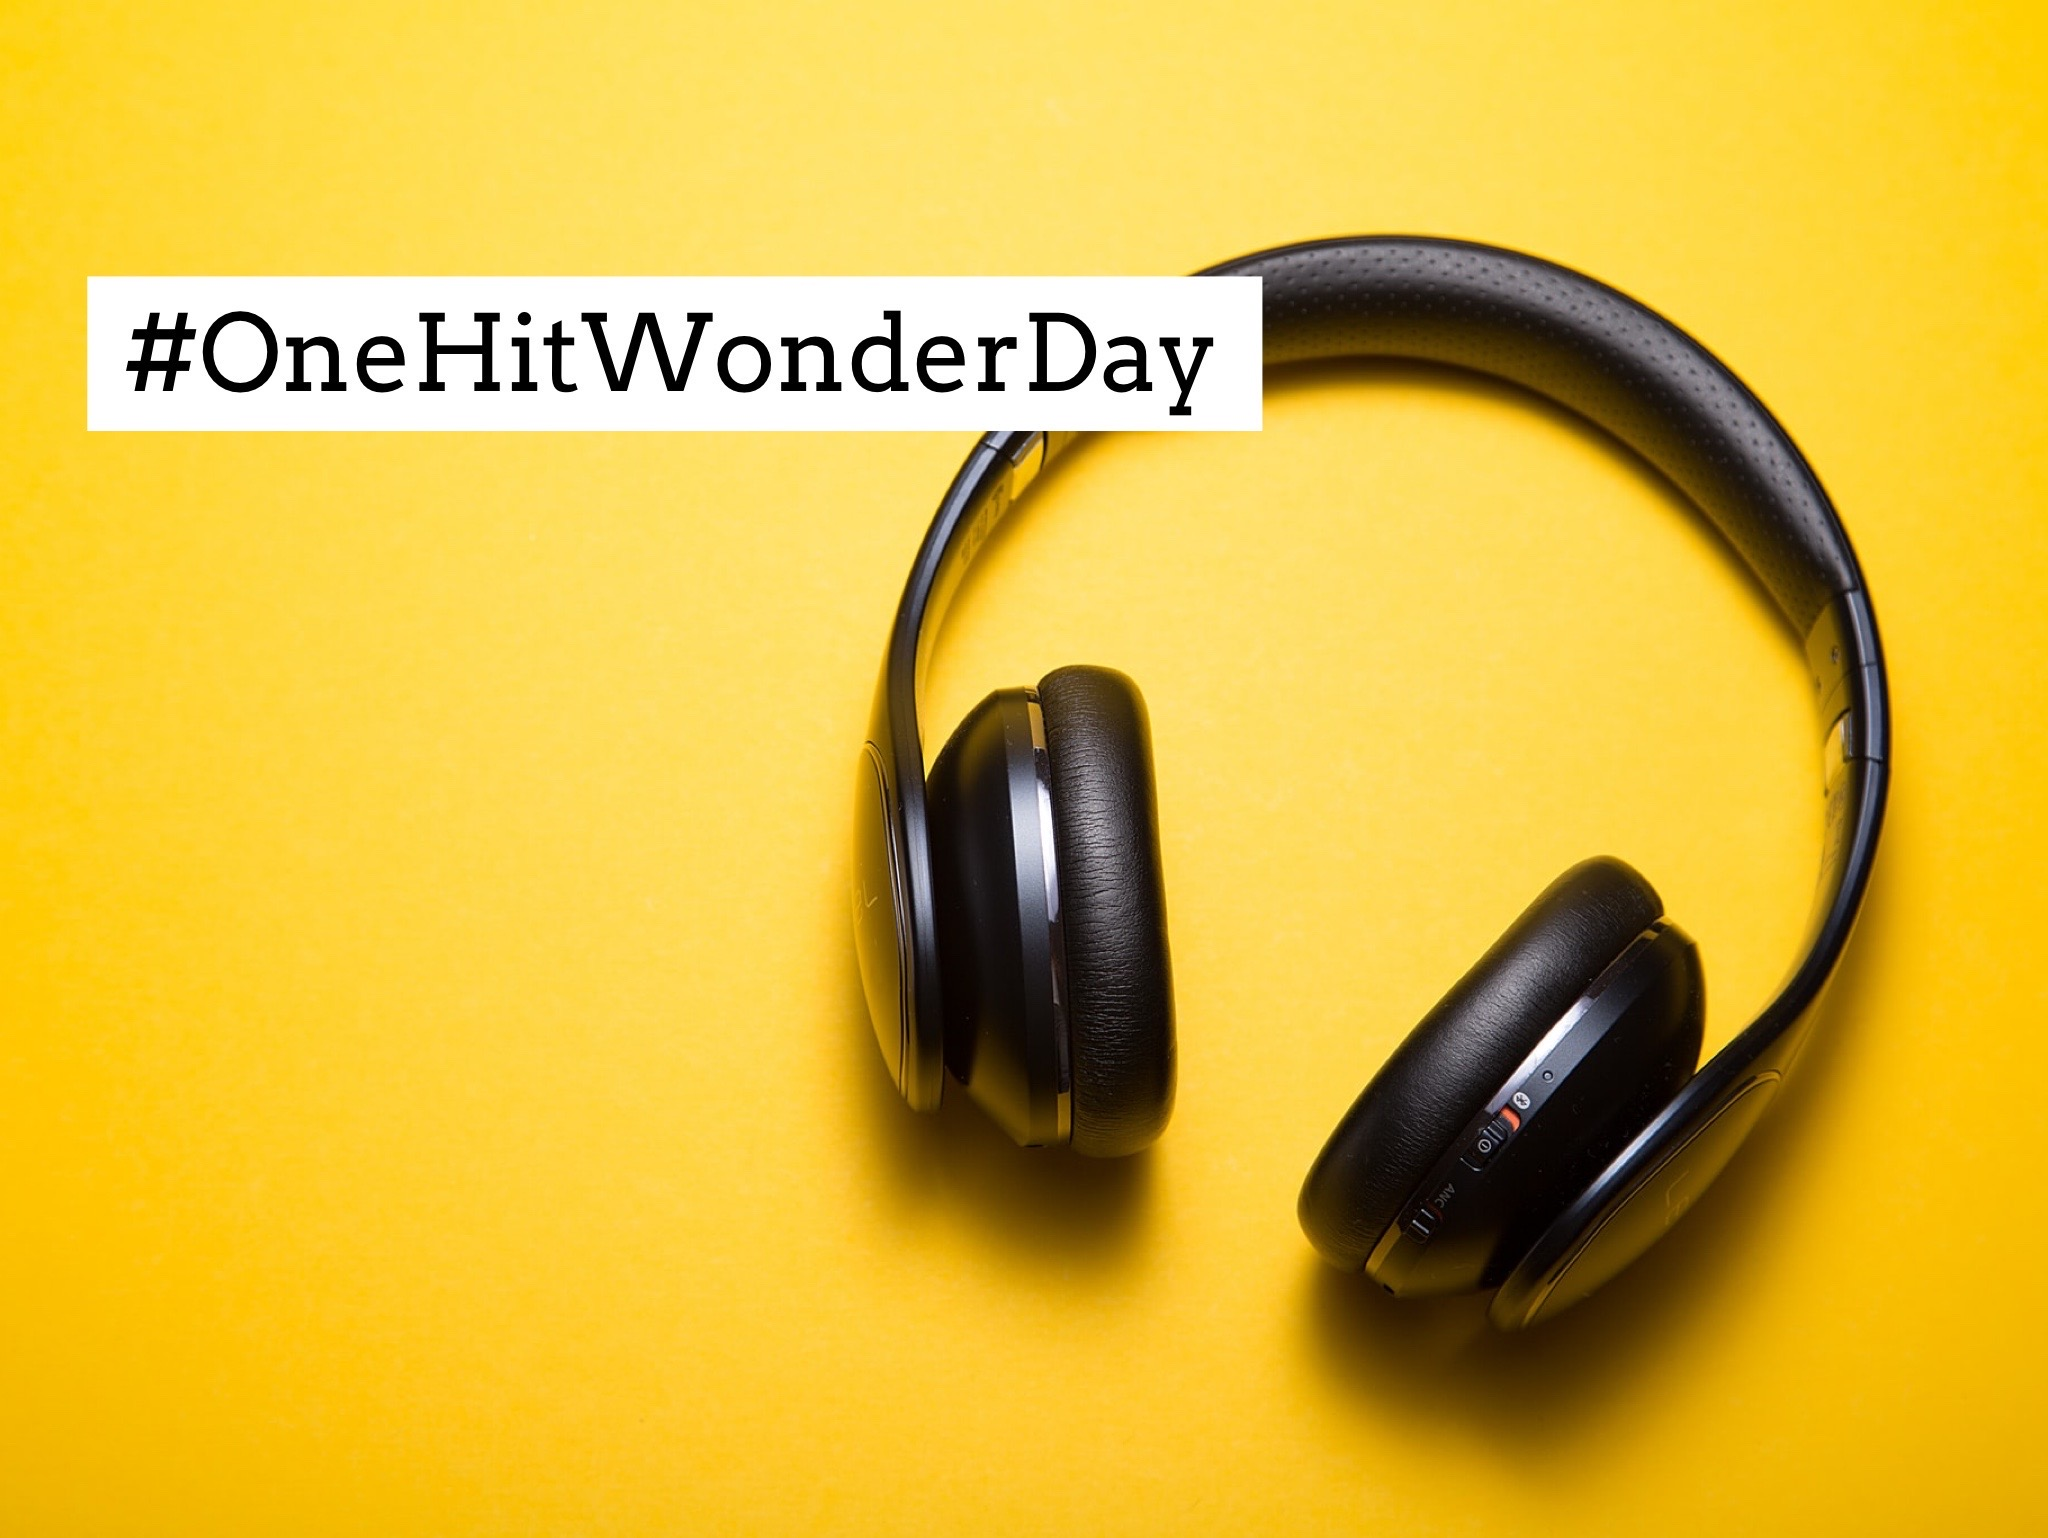 How did I almost miss #OneHitWonderDay